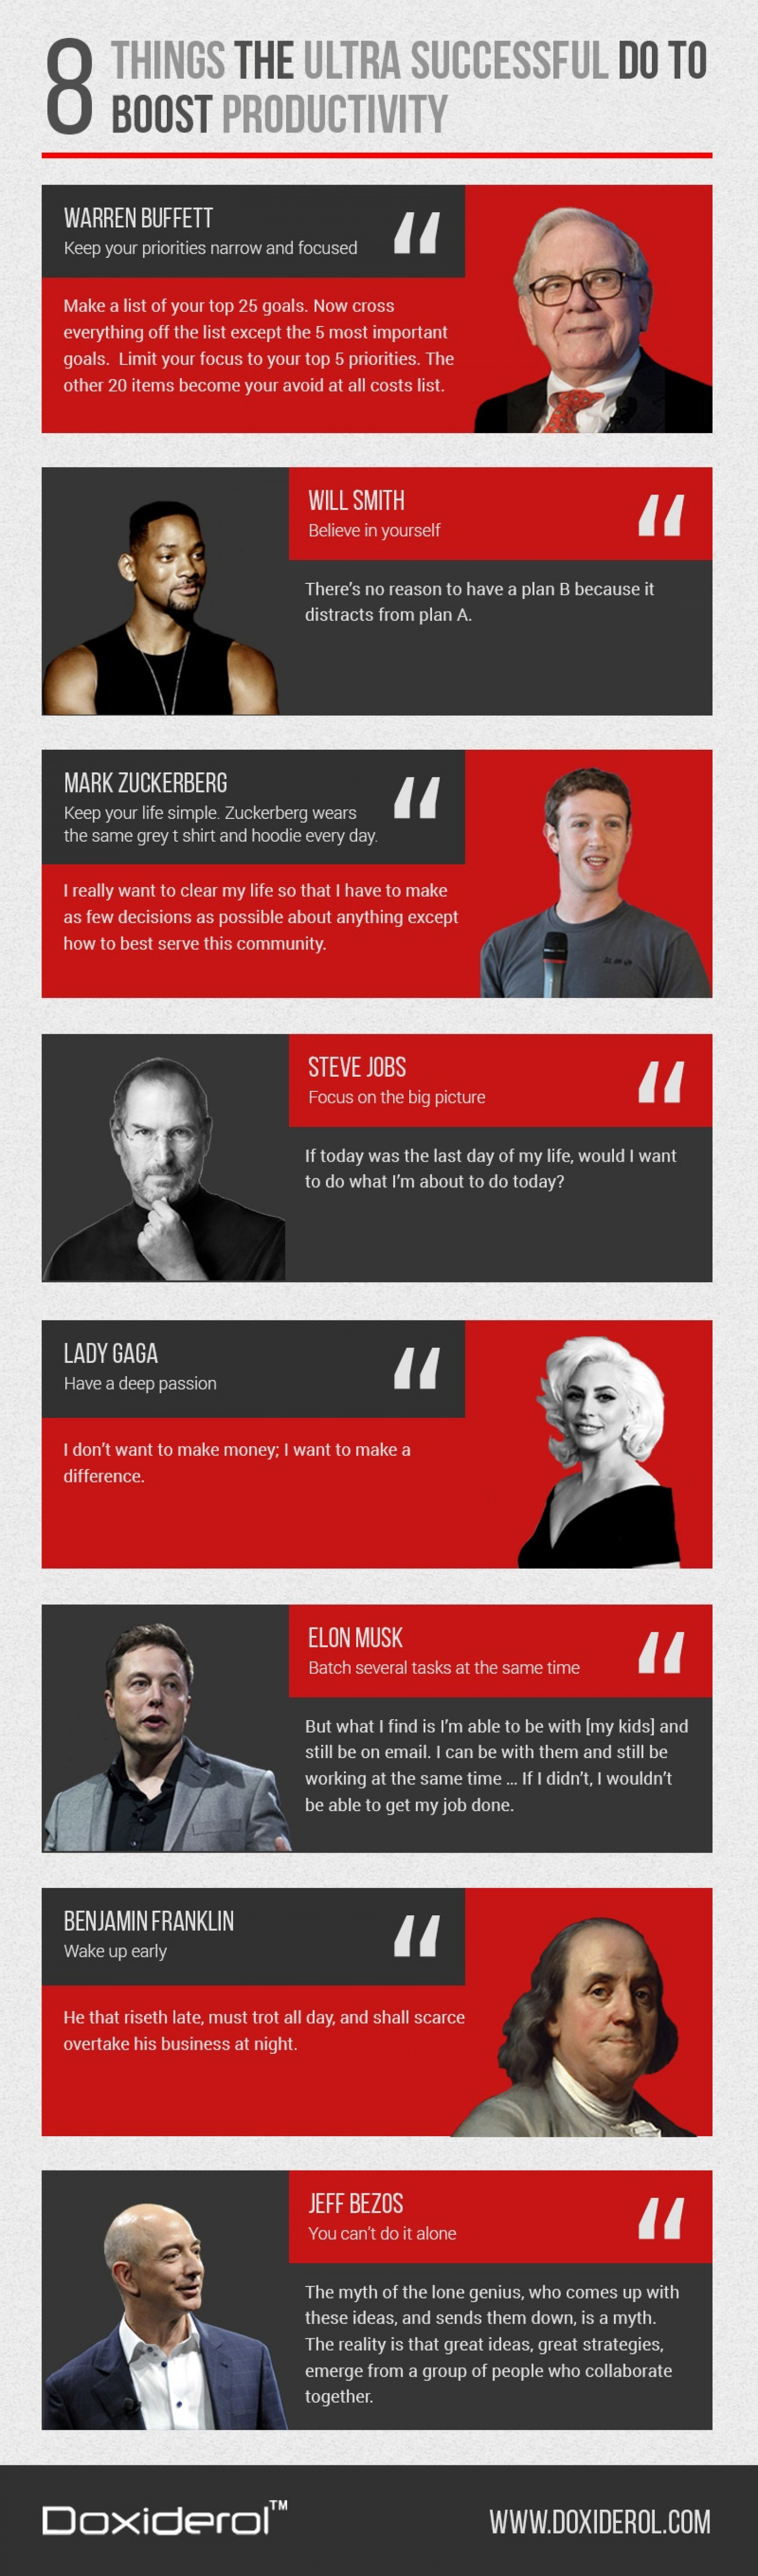 8 Things the Ultra Successful Do to improve Productivity Infographic